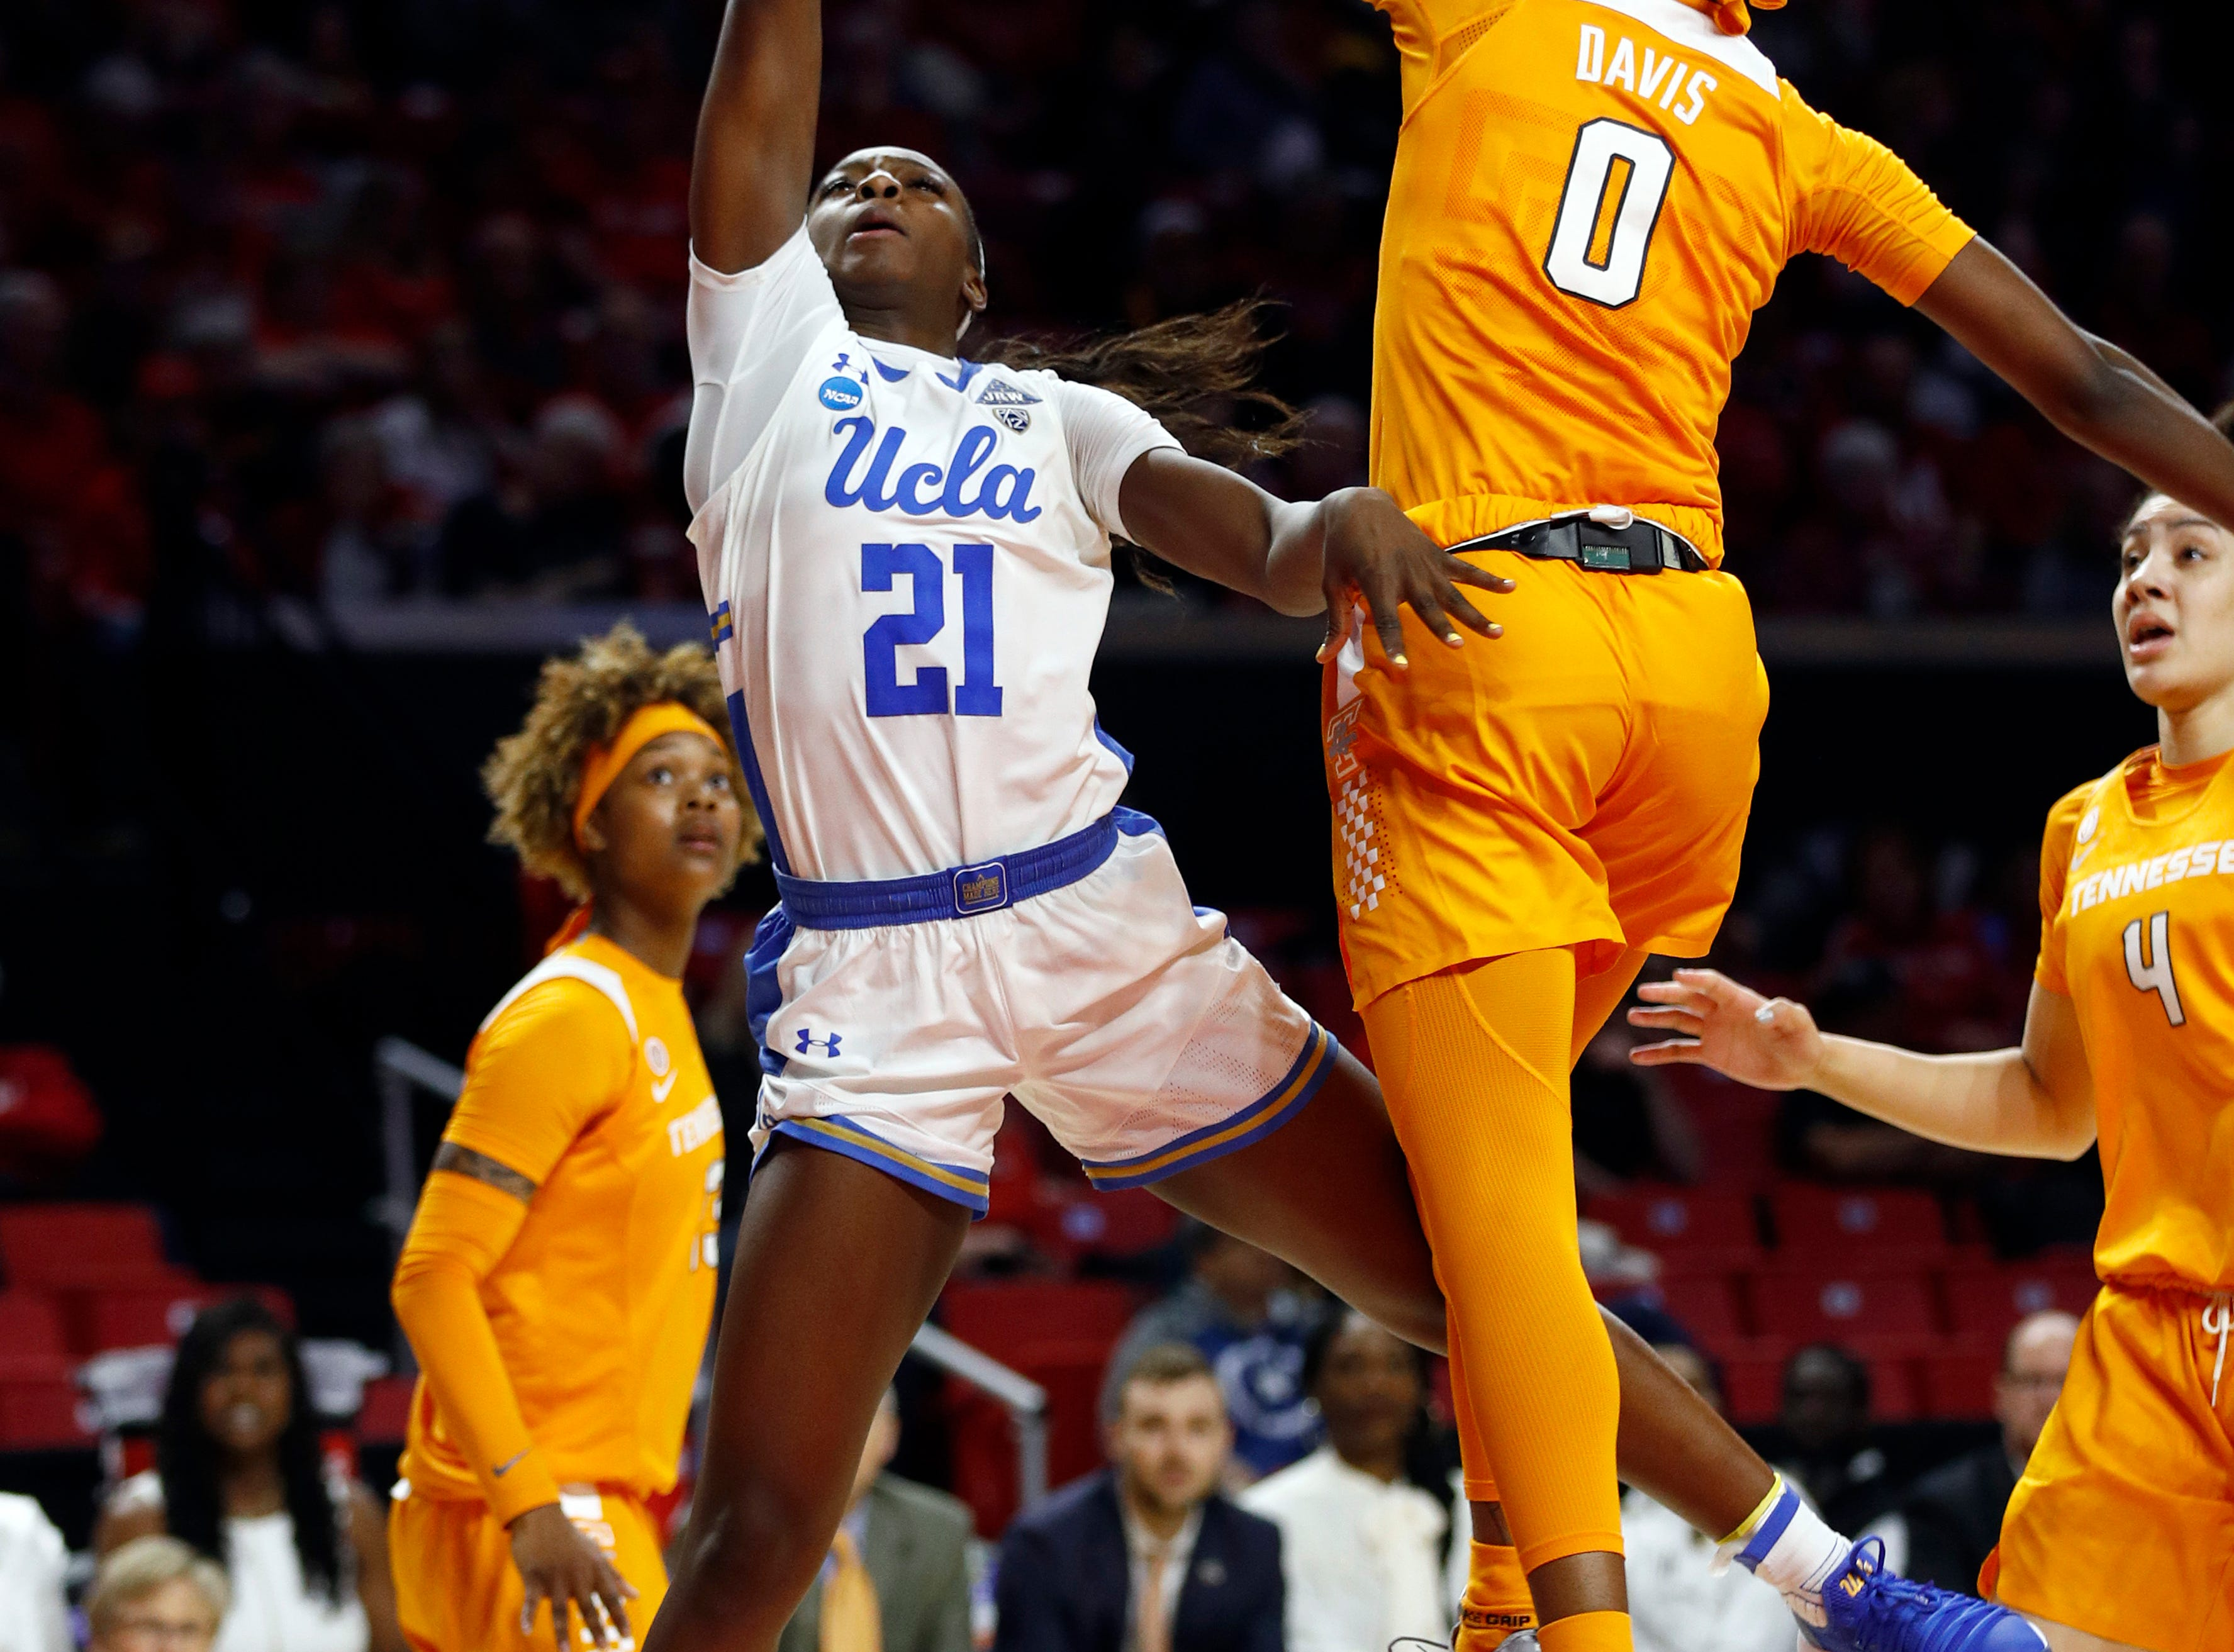 UCLA forward Michaela Onyenwere (21) shoots over Tennessee guard Rennia Davis in the first half of a first-round game in the NCAA women's college basketball tournament, Saturday, March 23, 2019, in College Park, Md.